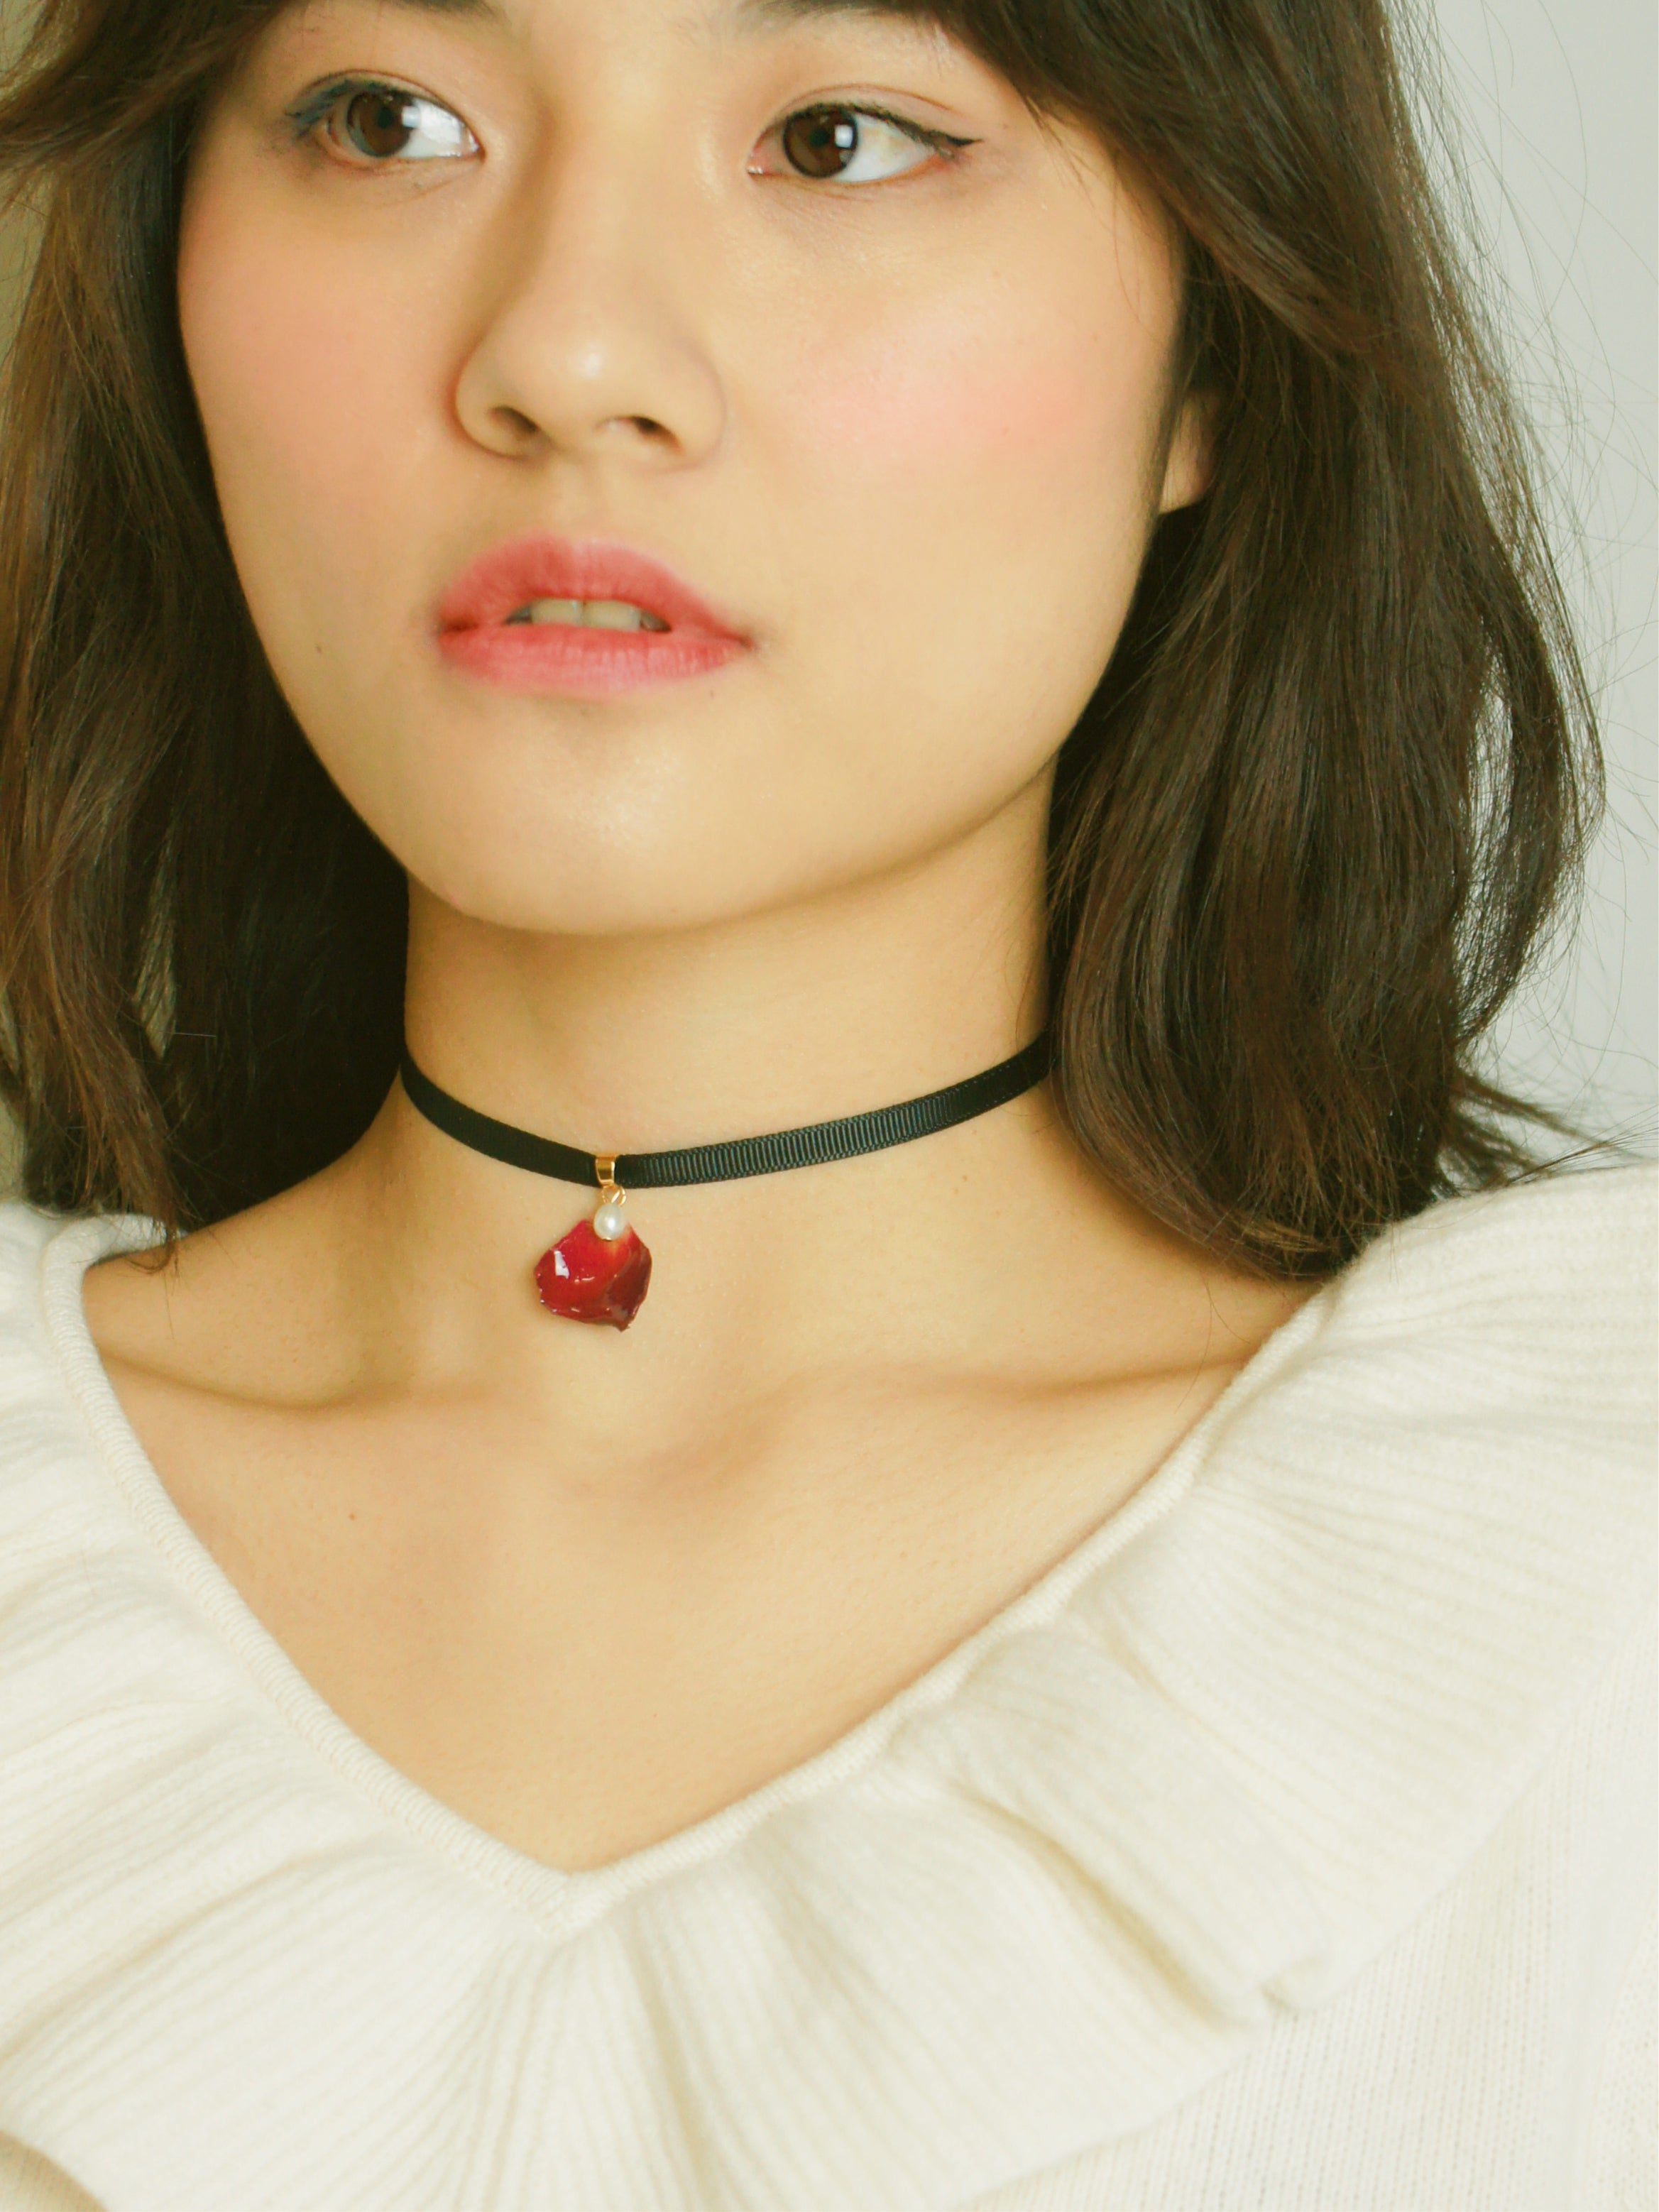 *REAL FLOWER* Grande Amore Rose Petal Ribbon-tie Choker/Necklace